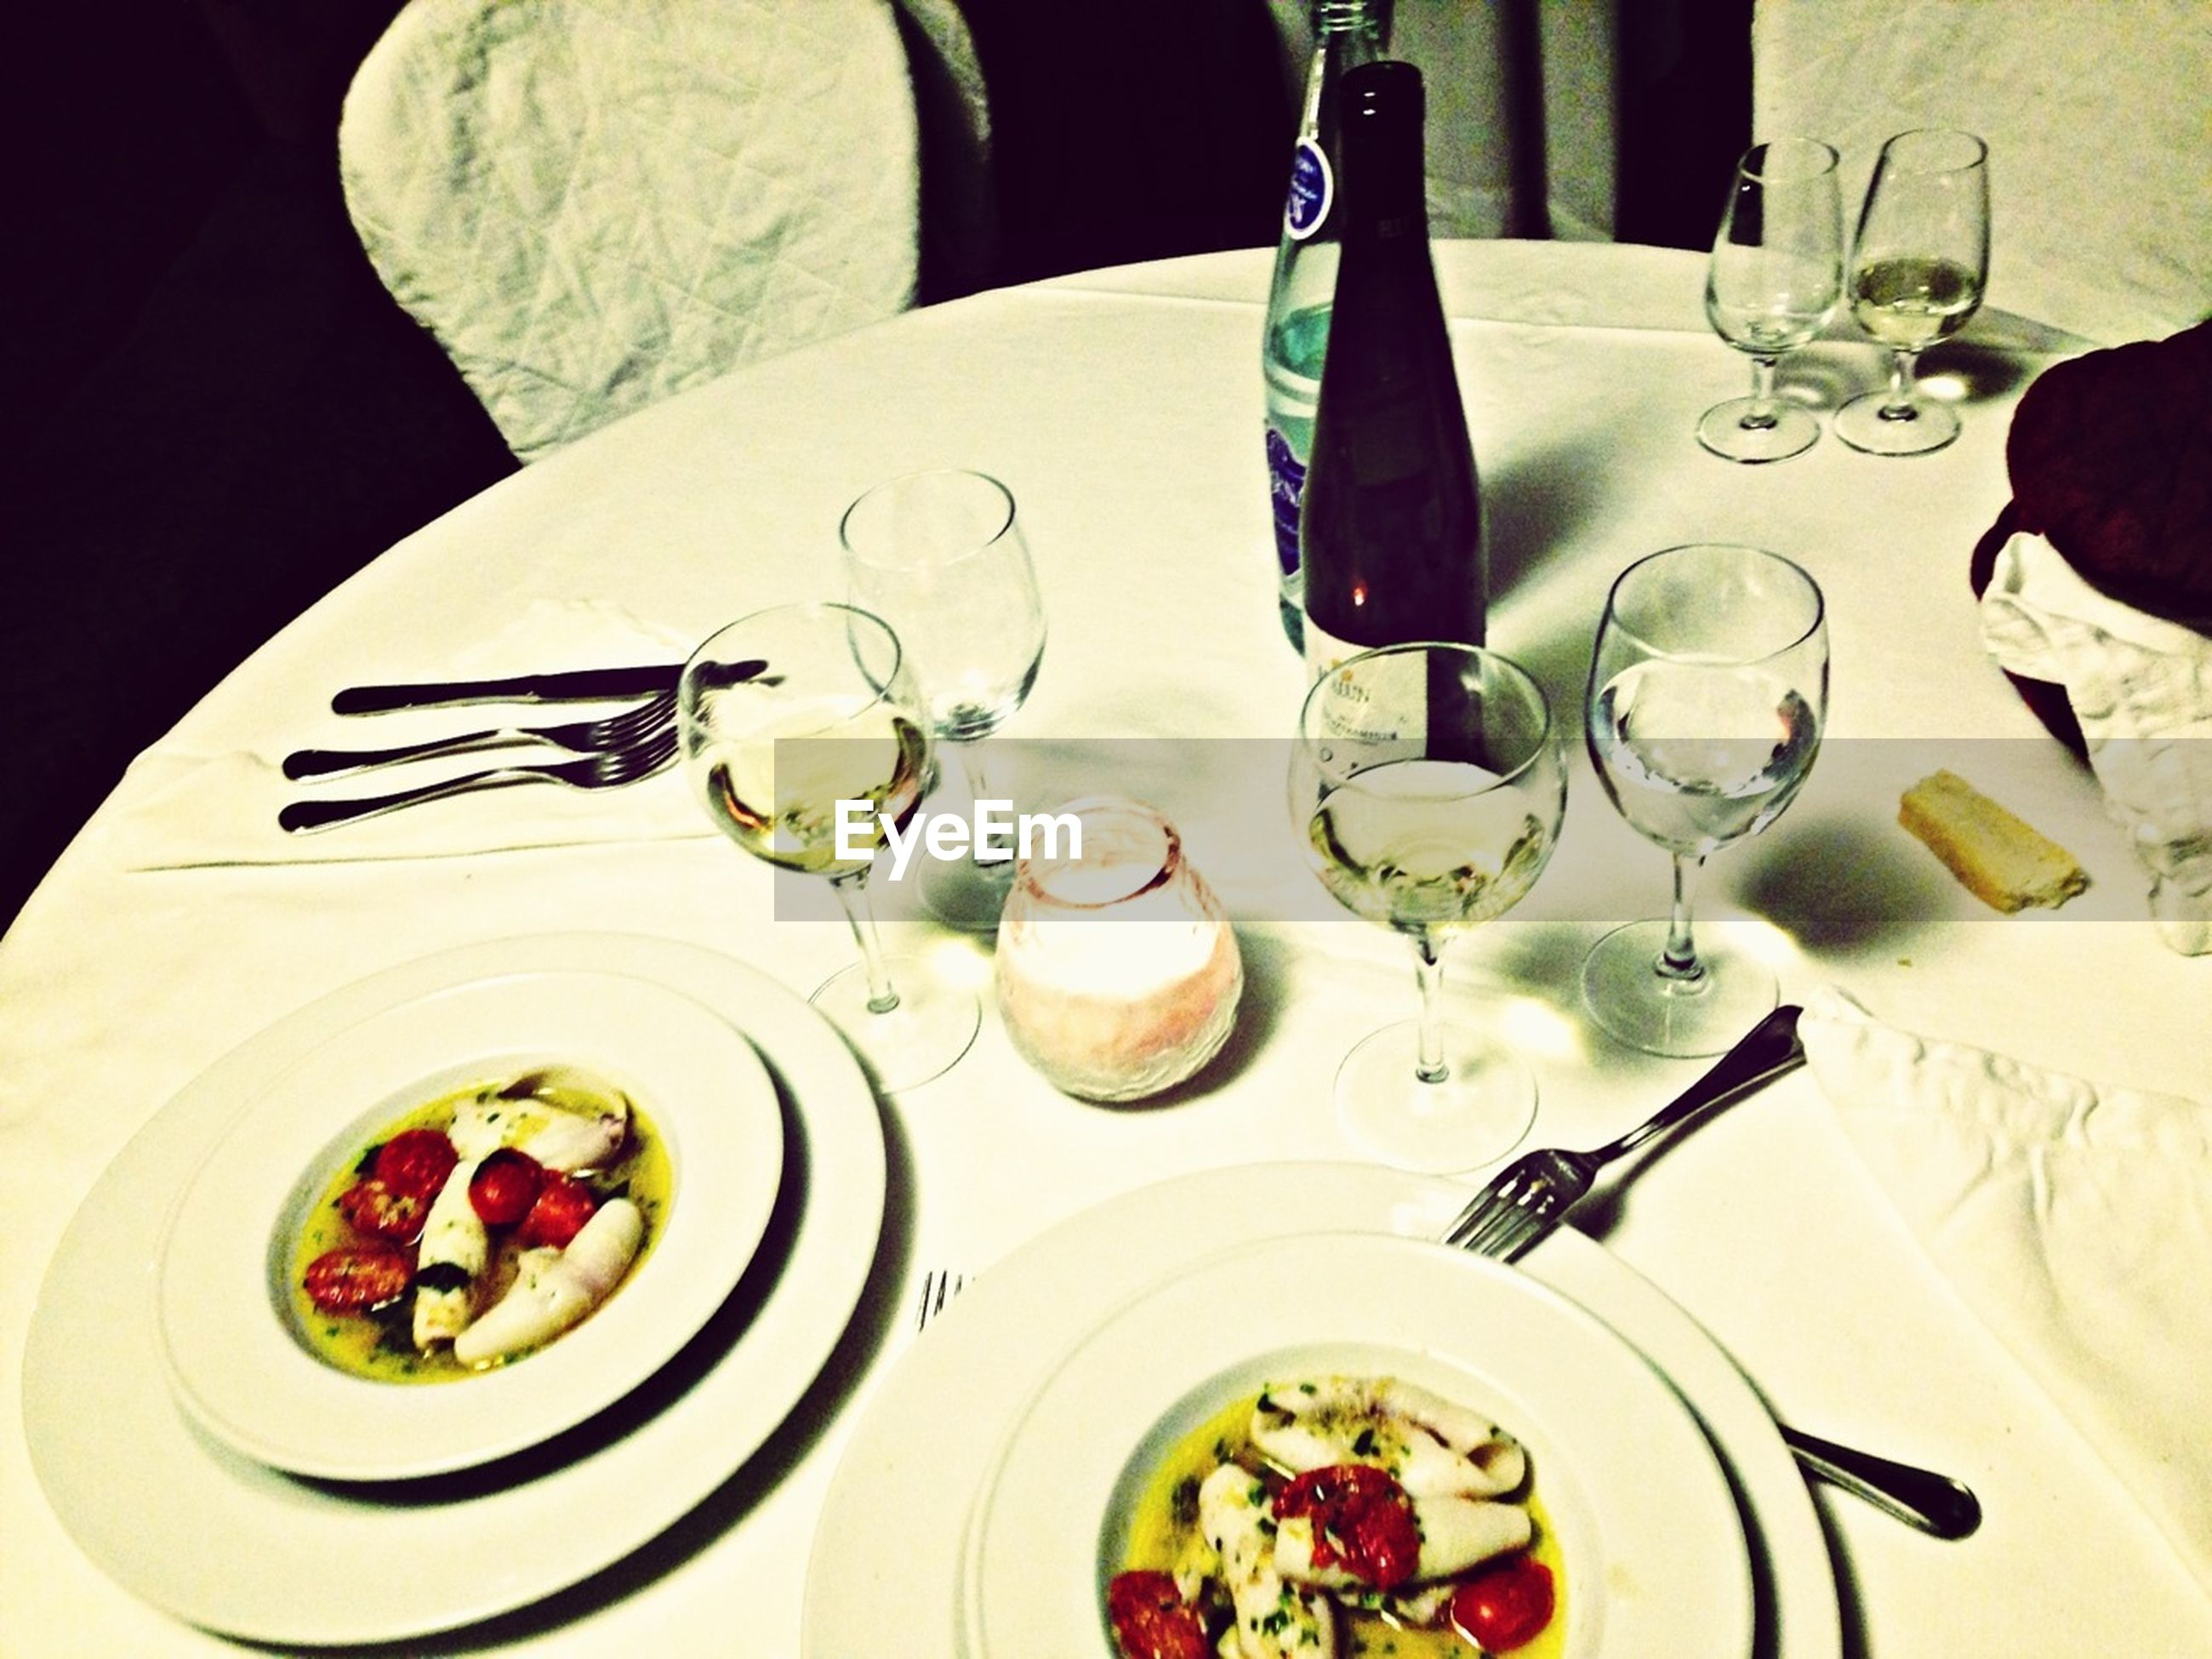 indoors, food and drink, plate, food, table, freshness, ready-to-eat, fork, high angle view, still life, serving size, bowl, spoon, healthy eating, meal, served, salad, drink, indulgence, no people